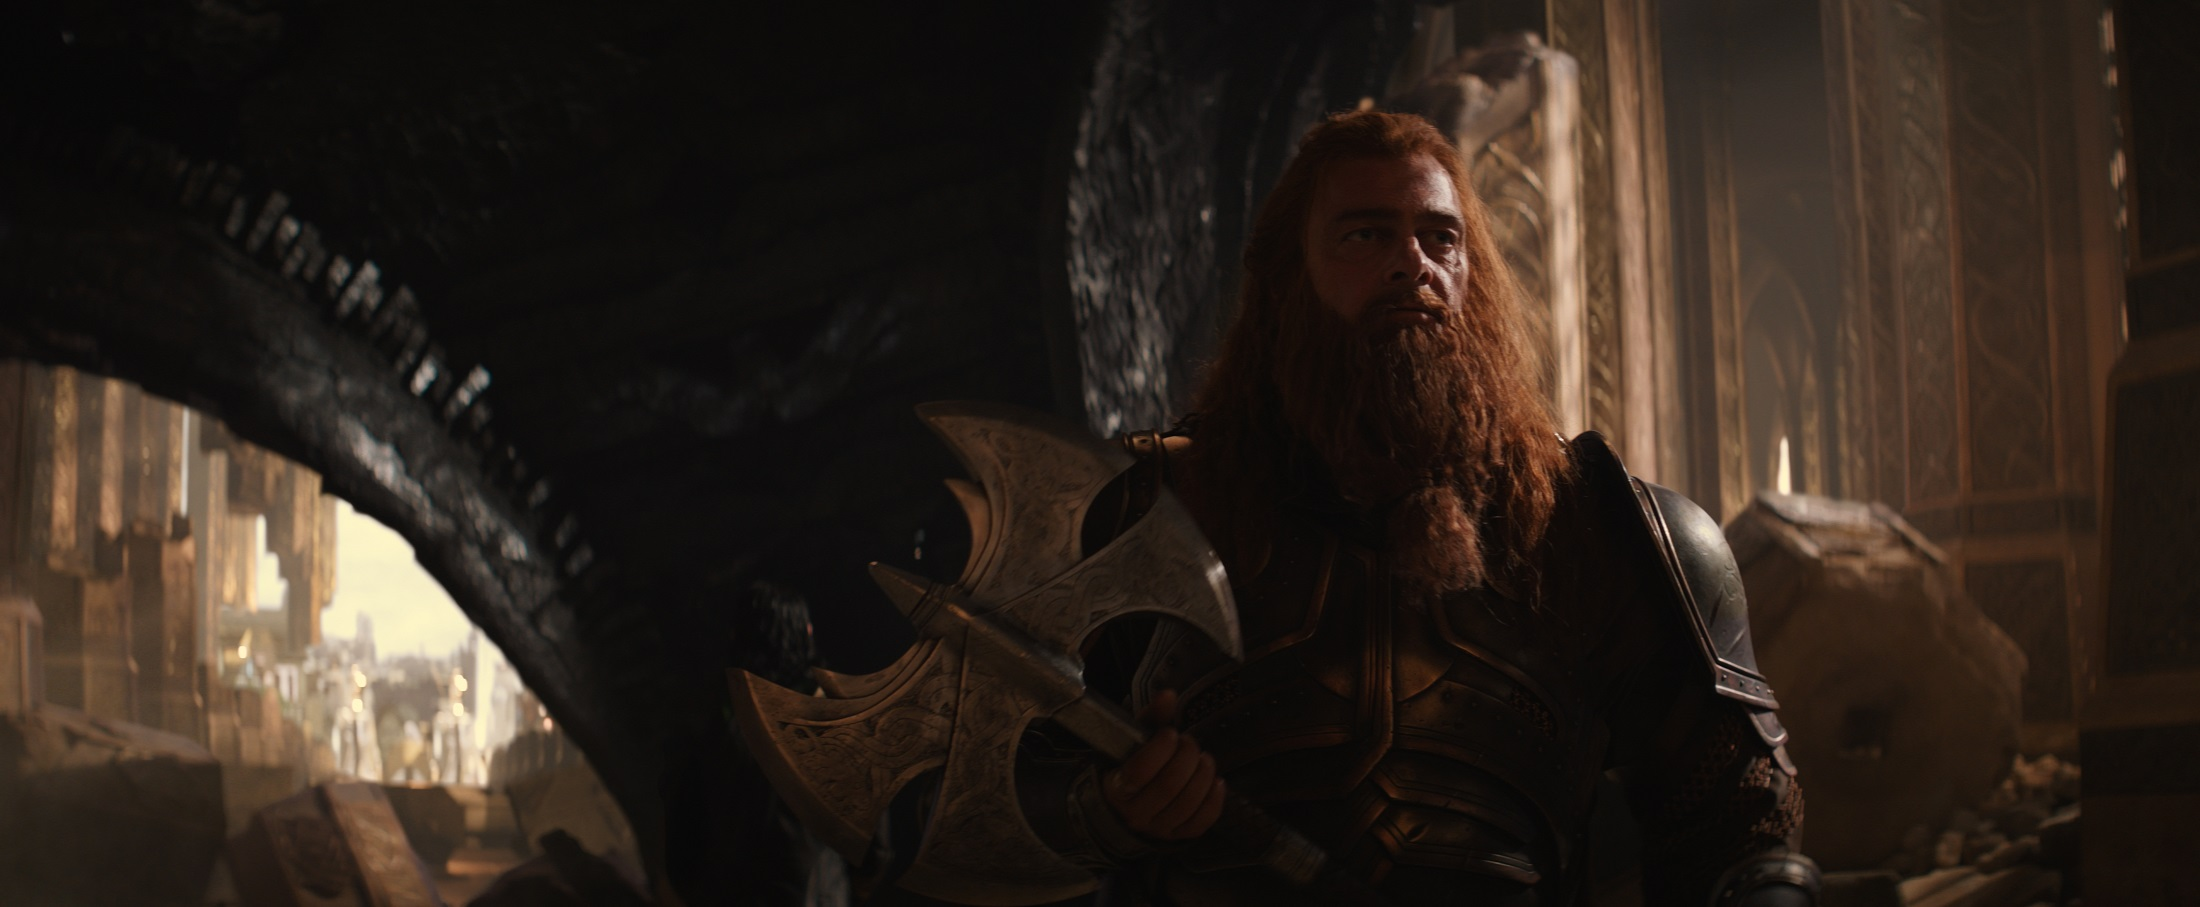 http://vignette4.wikia.nocookie.net/marvelmovies/images/7/76/Volstagg_DarkW.jpg/revision/latest?cb=20131101085742